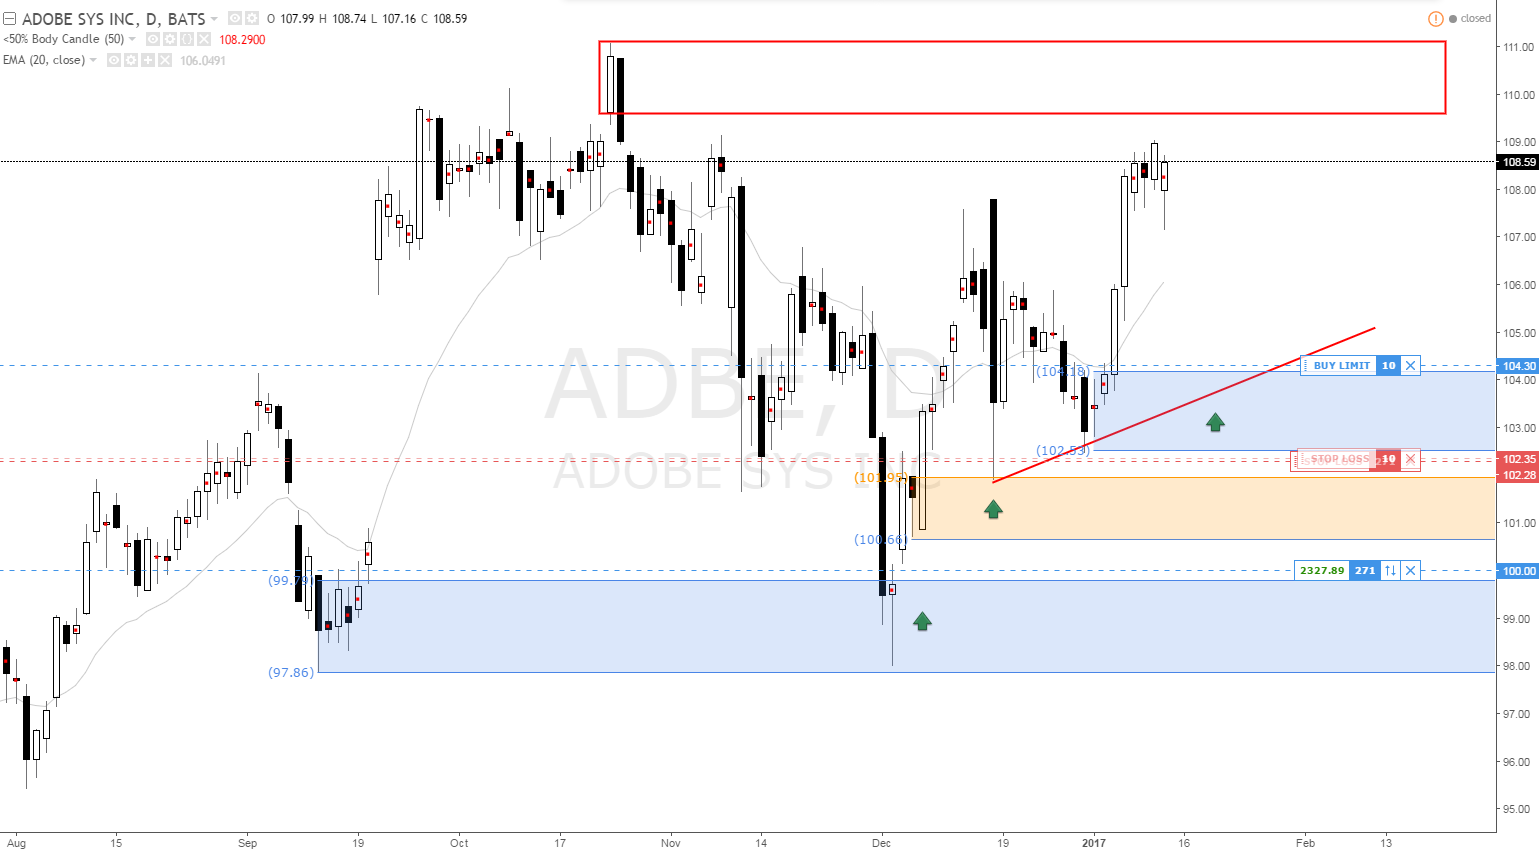 adobe_daily_demand_levels